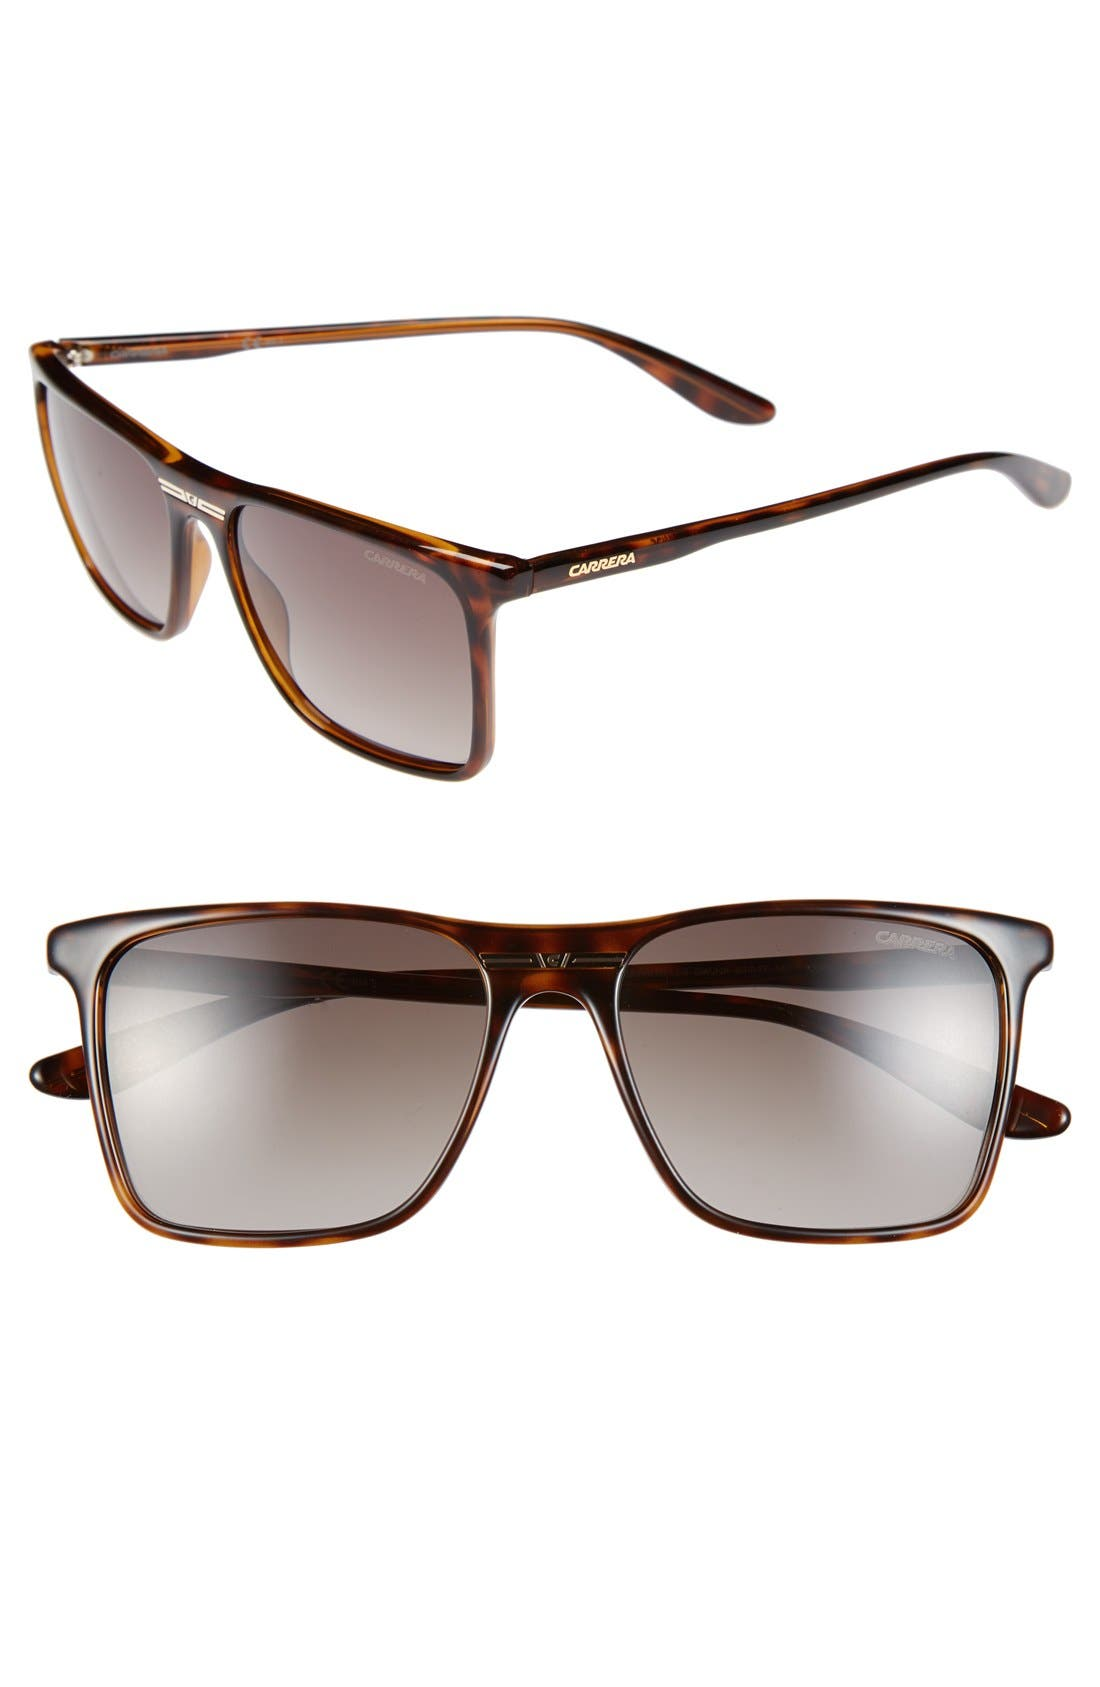 Alternate Image 1 Selected - Carrera Eyewear 55mm Sunglasses